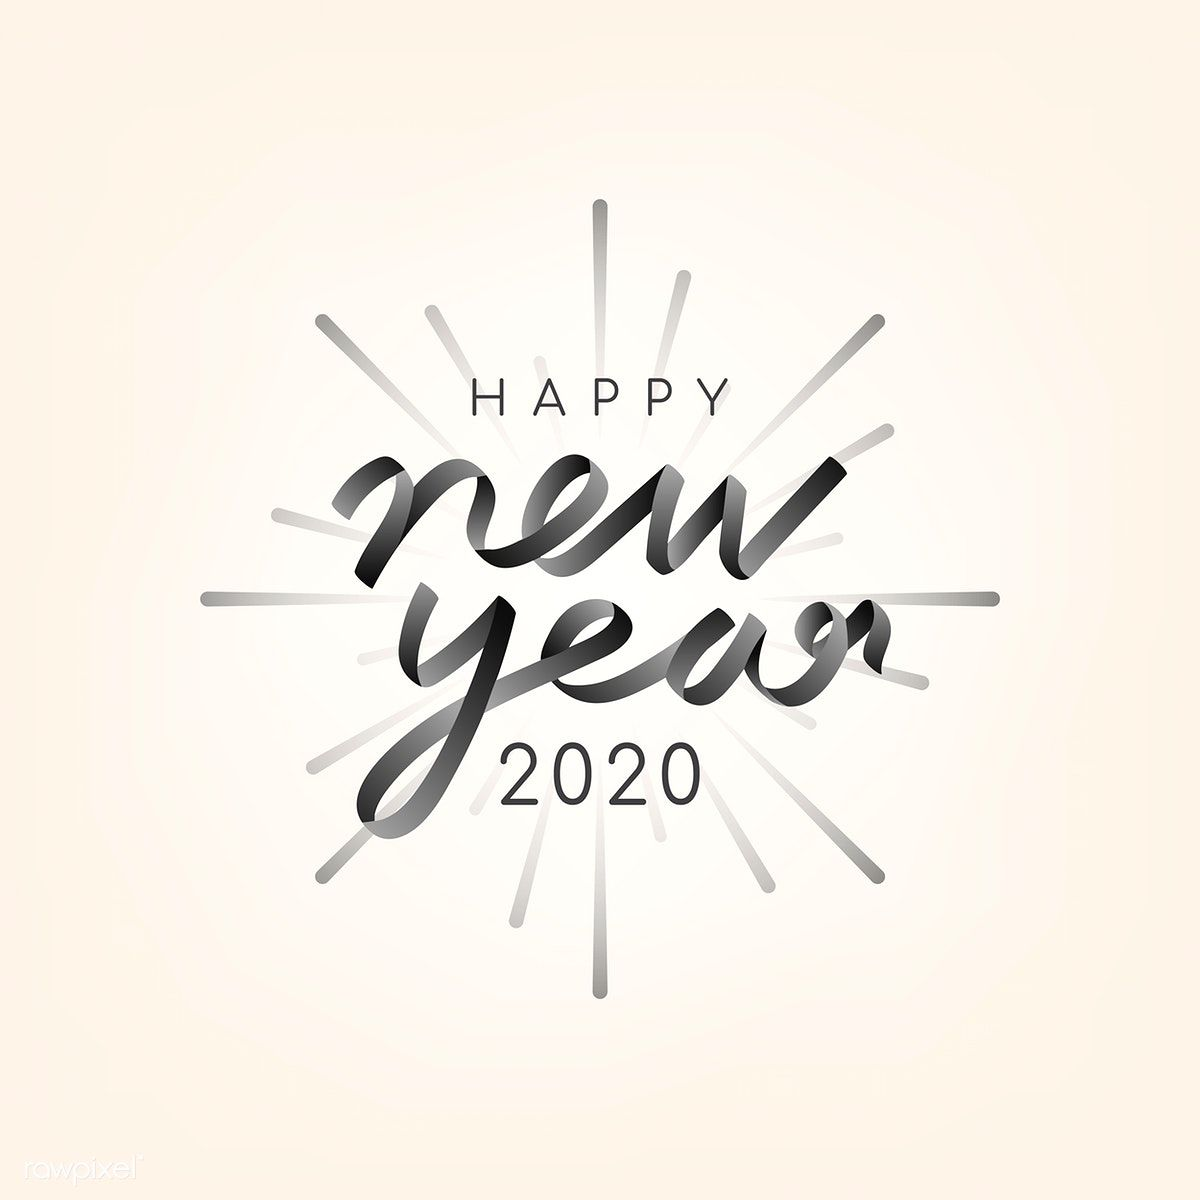 happy new year 2020 typography illustration free image by rawpixel com ningzk v in 2020 happy new year typography new year typography new year doodle happy new year 2020 typography